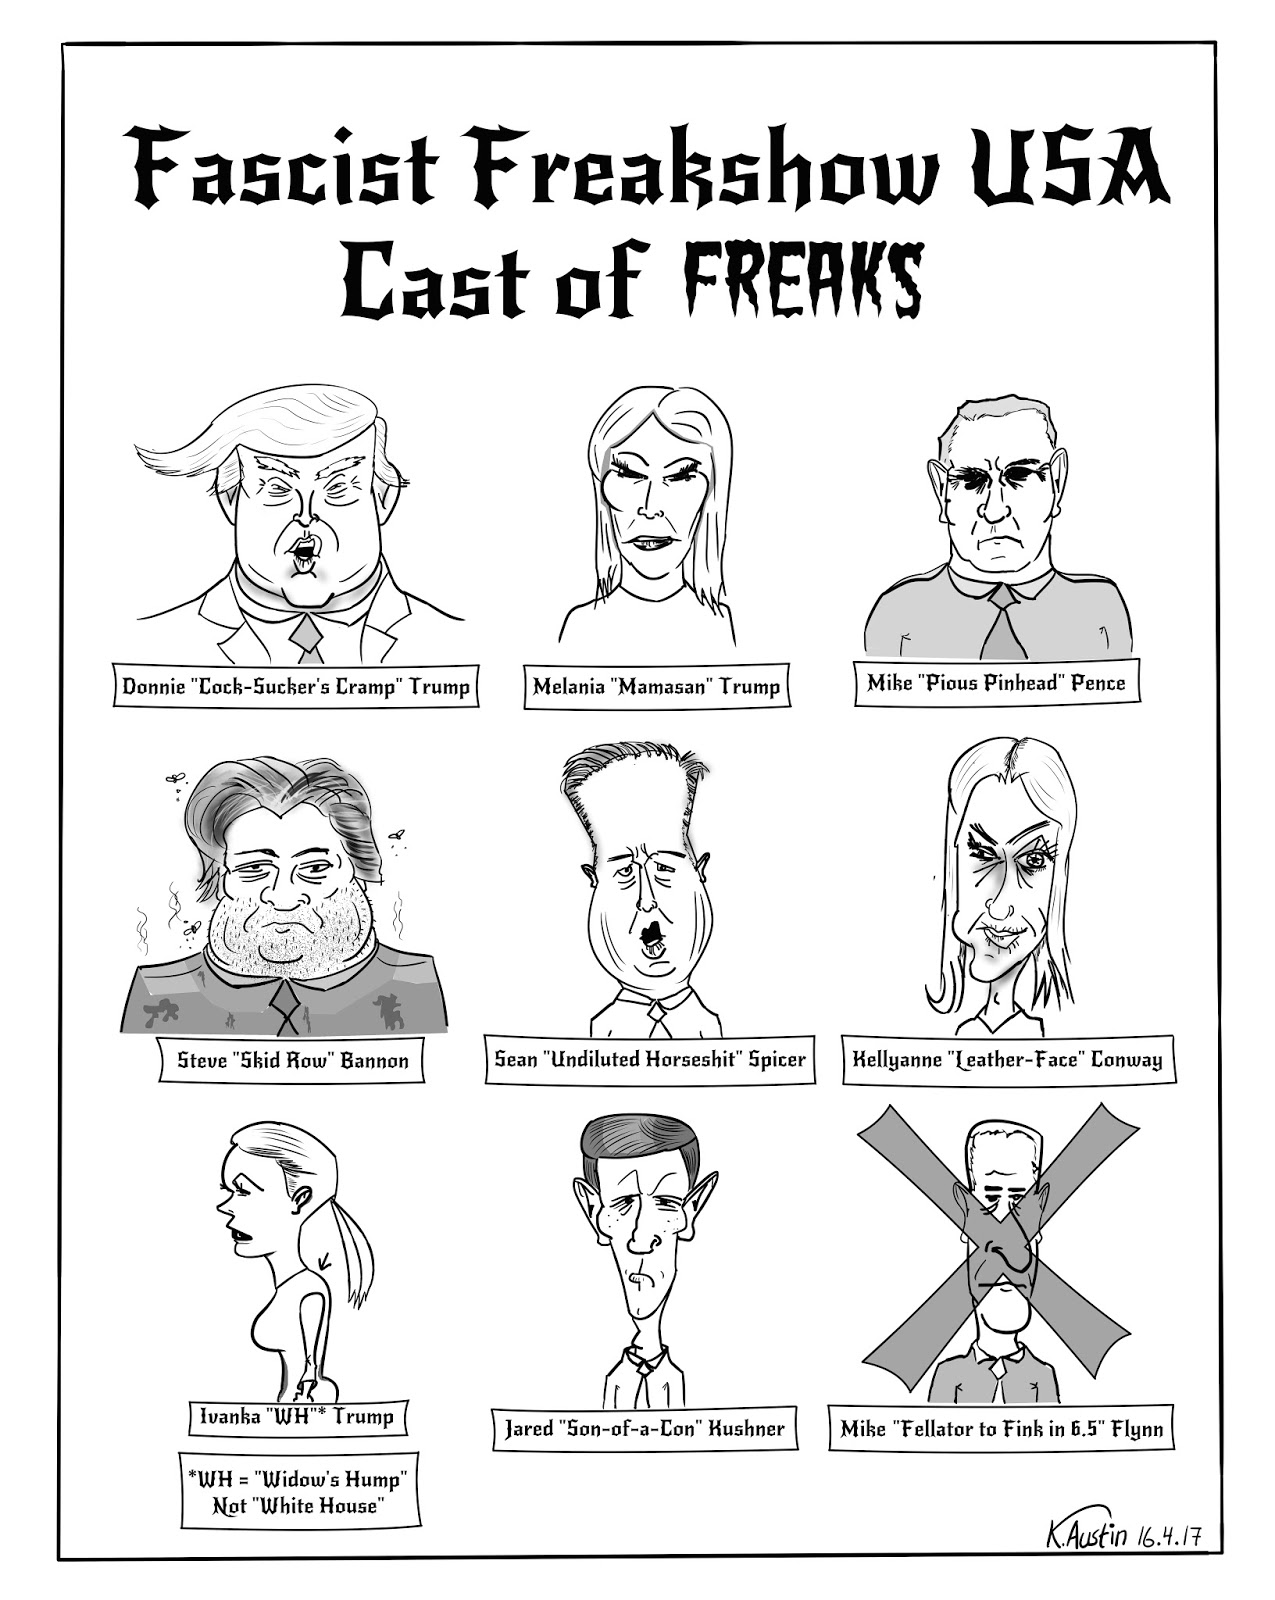 Freak's Own 11: Fascist Freakshow USA